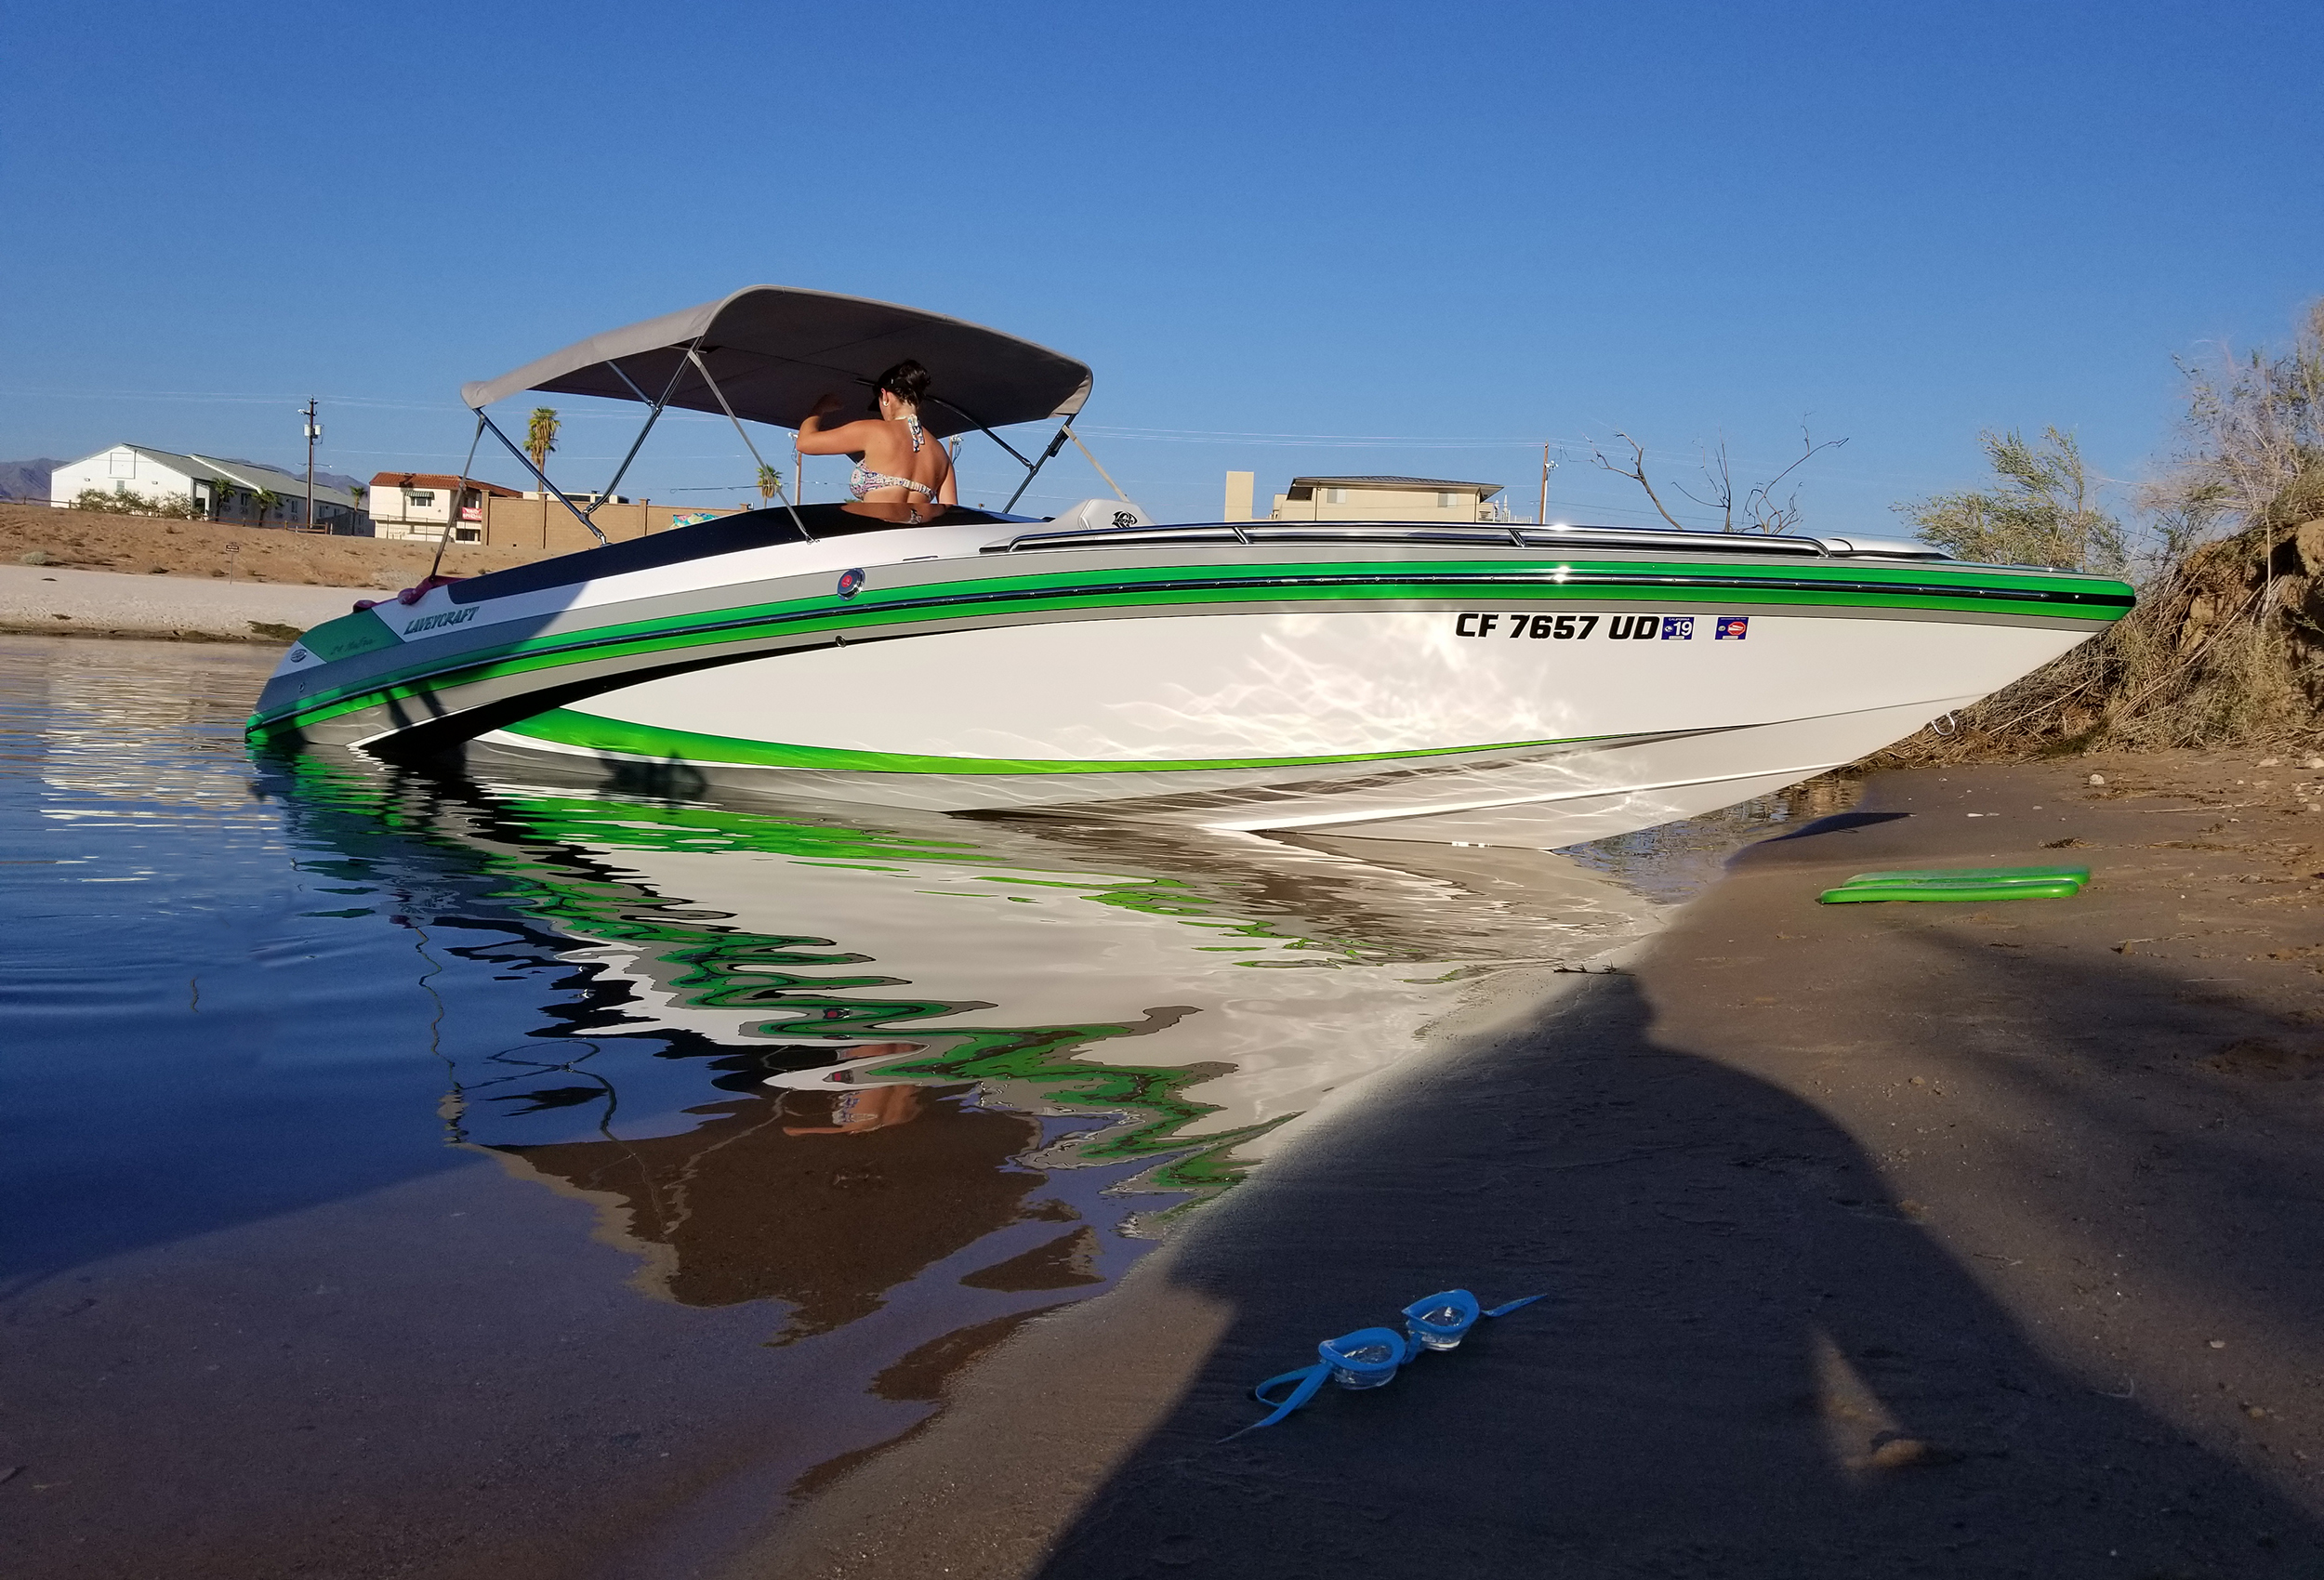 24 NuEra Lavey Craft - green may-18 beached.jpg